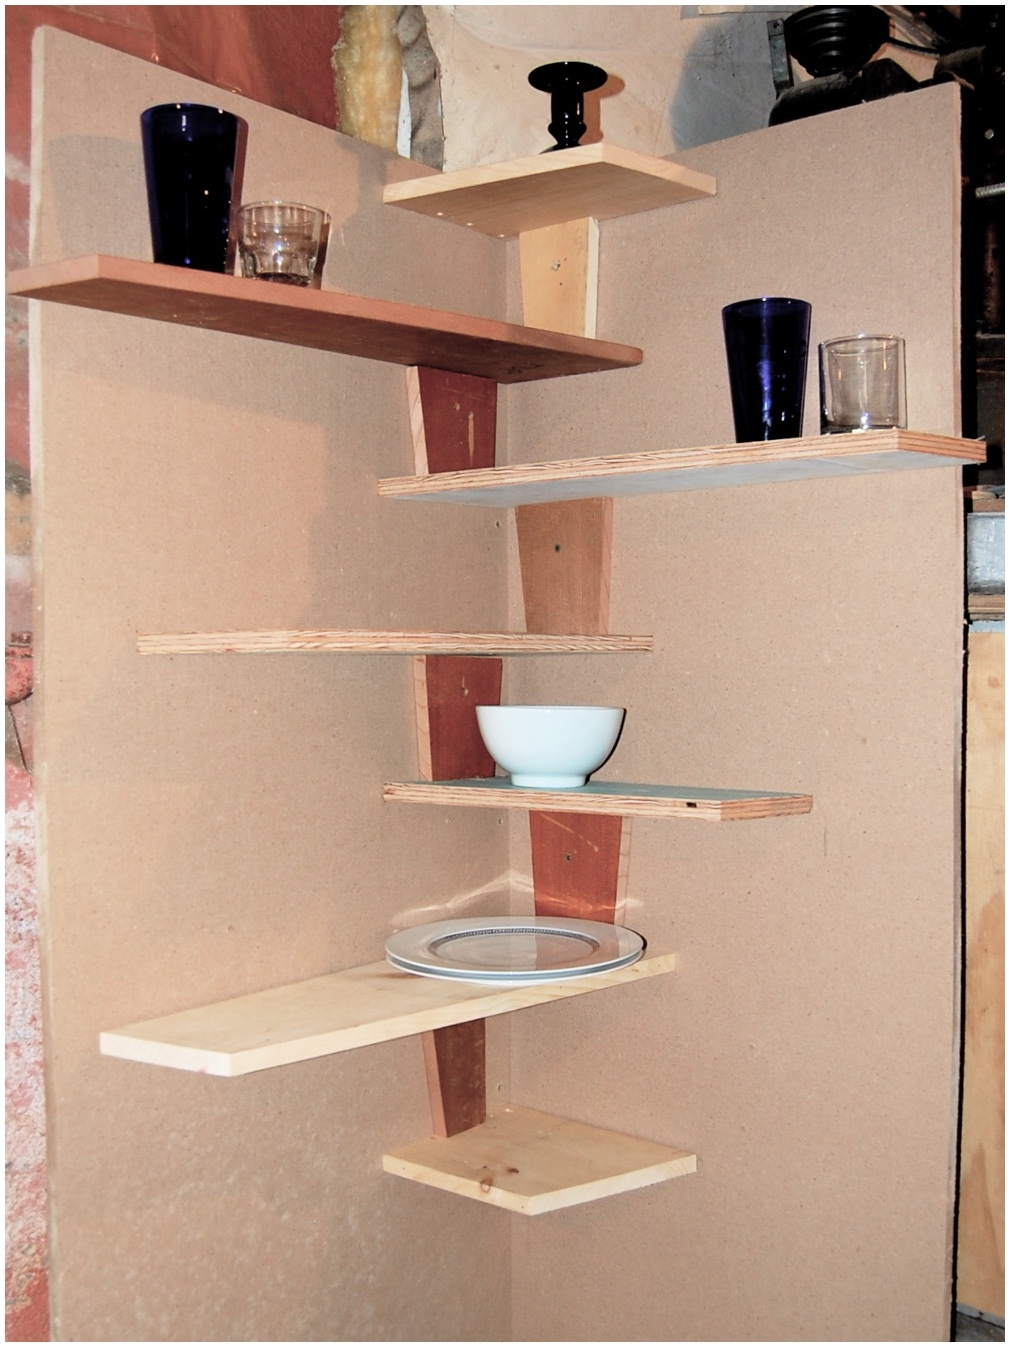 15 collection of tv corner shelf unit. Black Bedroom Furniture Sets. Home Design Ideas